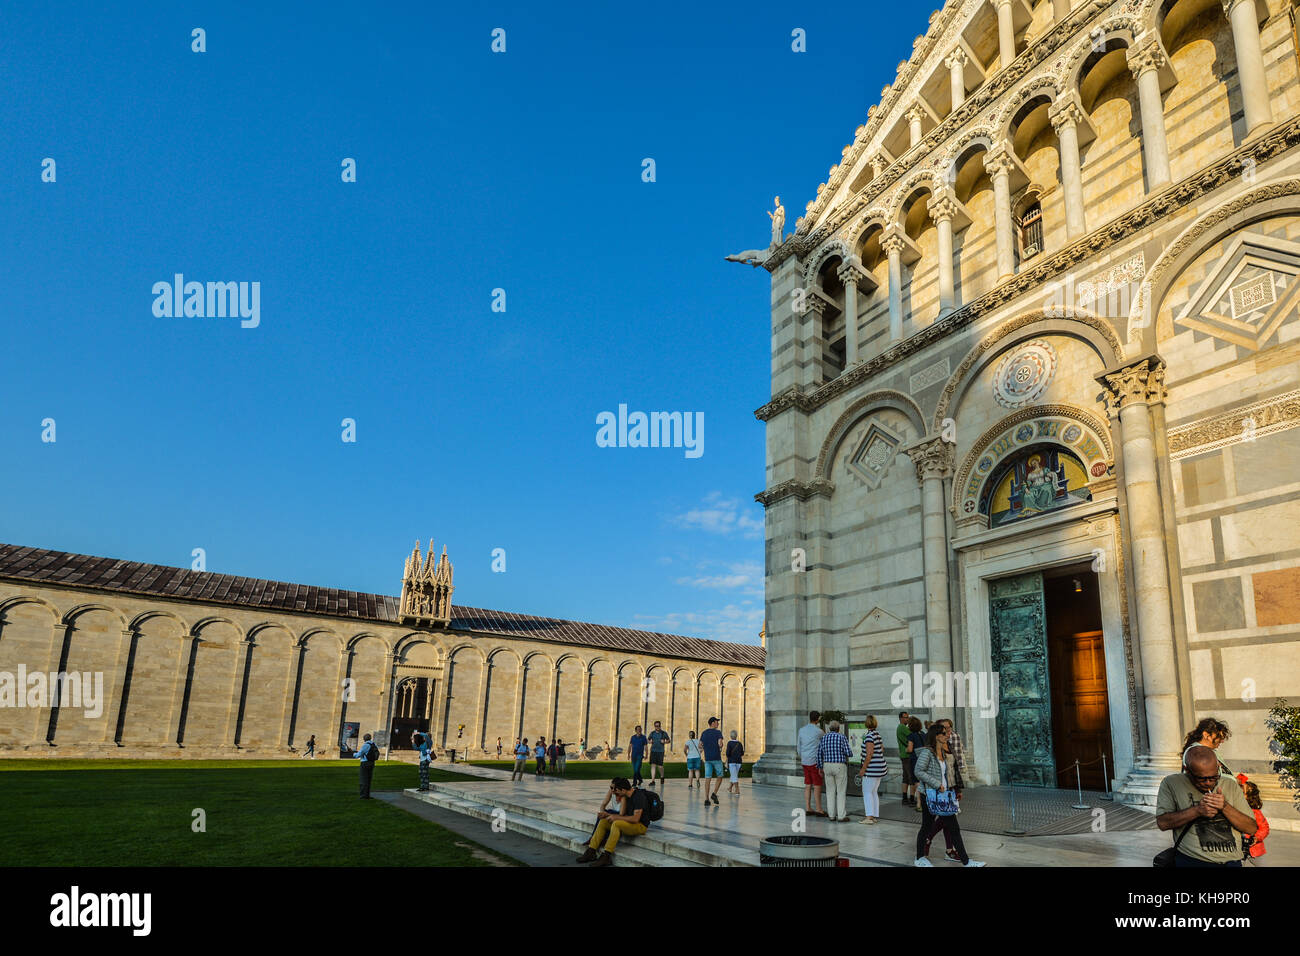 The front of the Duomo, Pisa cathedral with the Campo Santo behind in the Field of Miracles in Pisa Italy - Stock Image